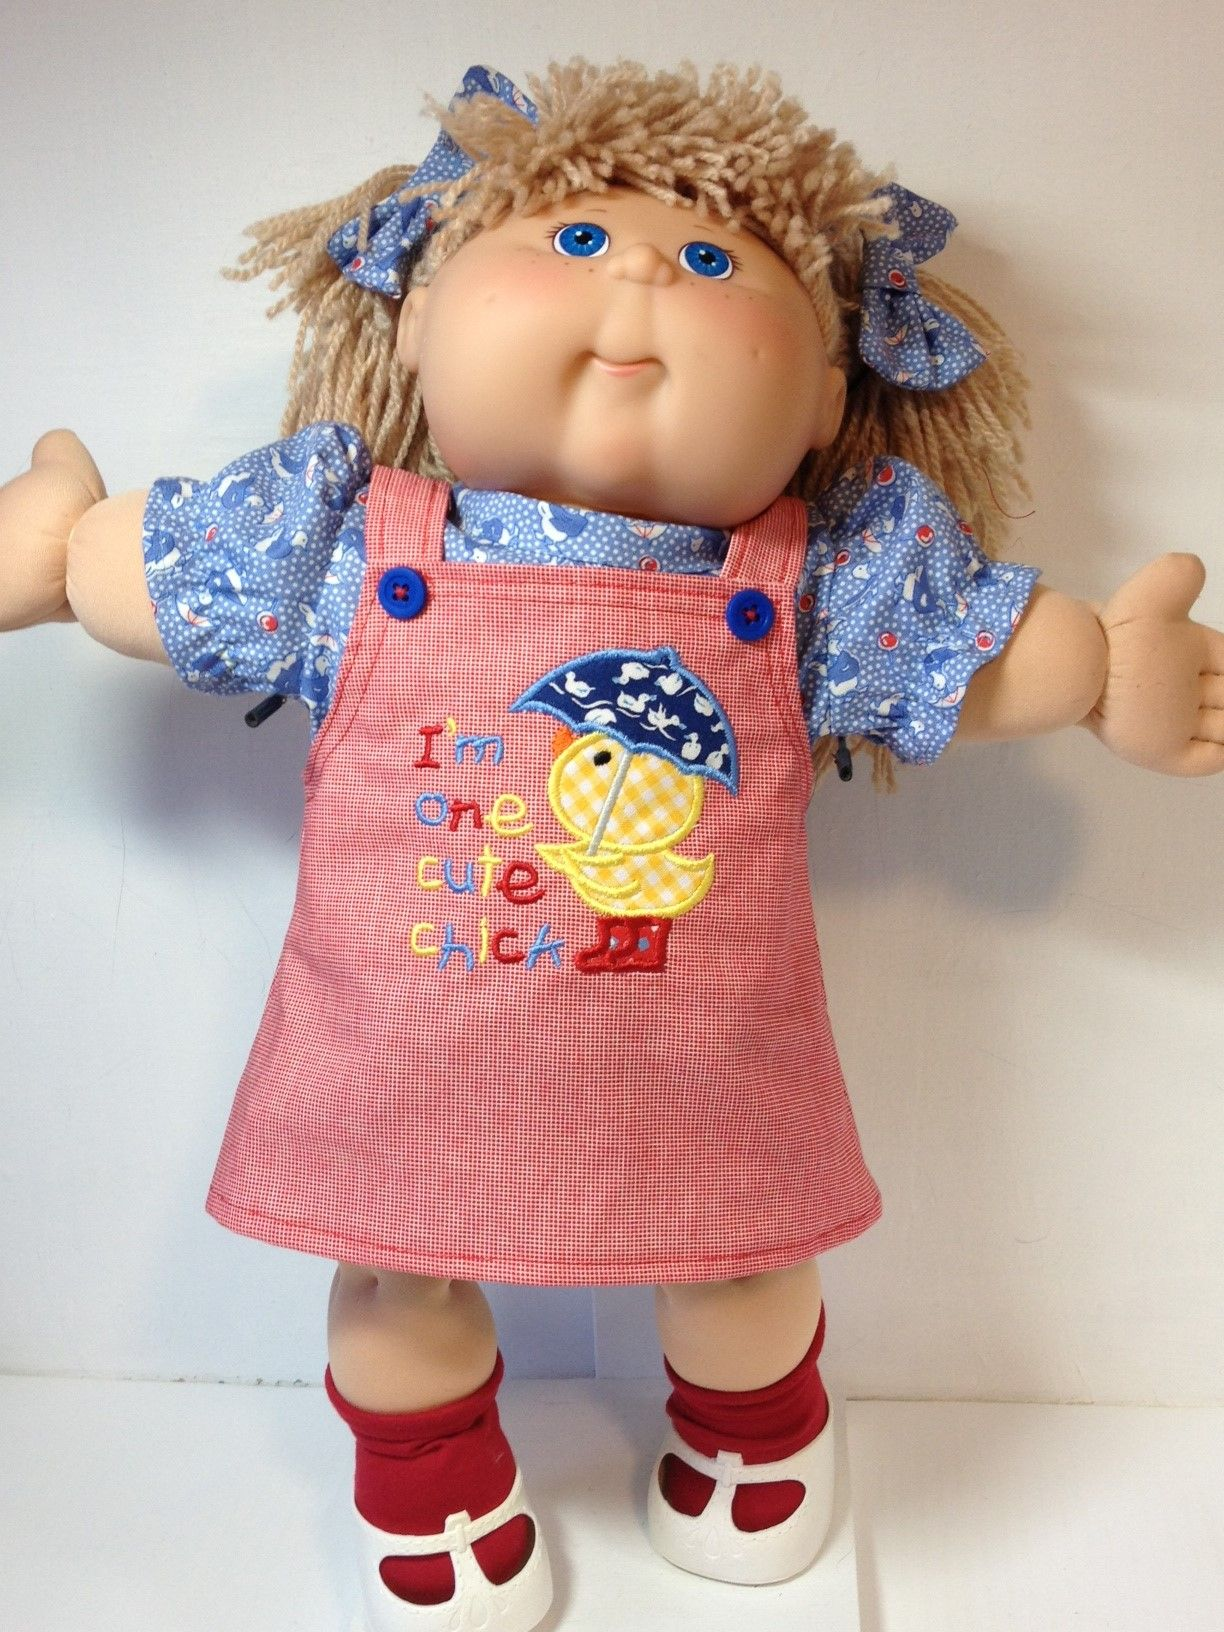 Cabbage Patch Jumper I\'m ONe Cute Chick | "|1224|1632|?|1342fa08a225d4ee35e554464a7cebad|False|UNLIKELY|0.30365487933158875